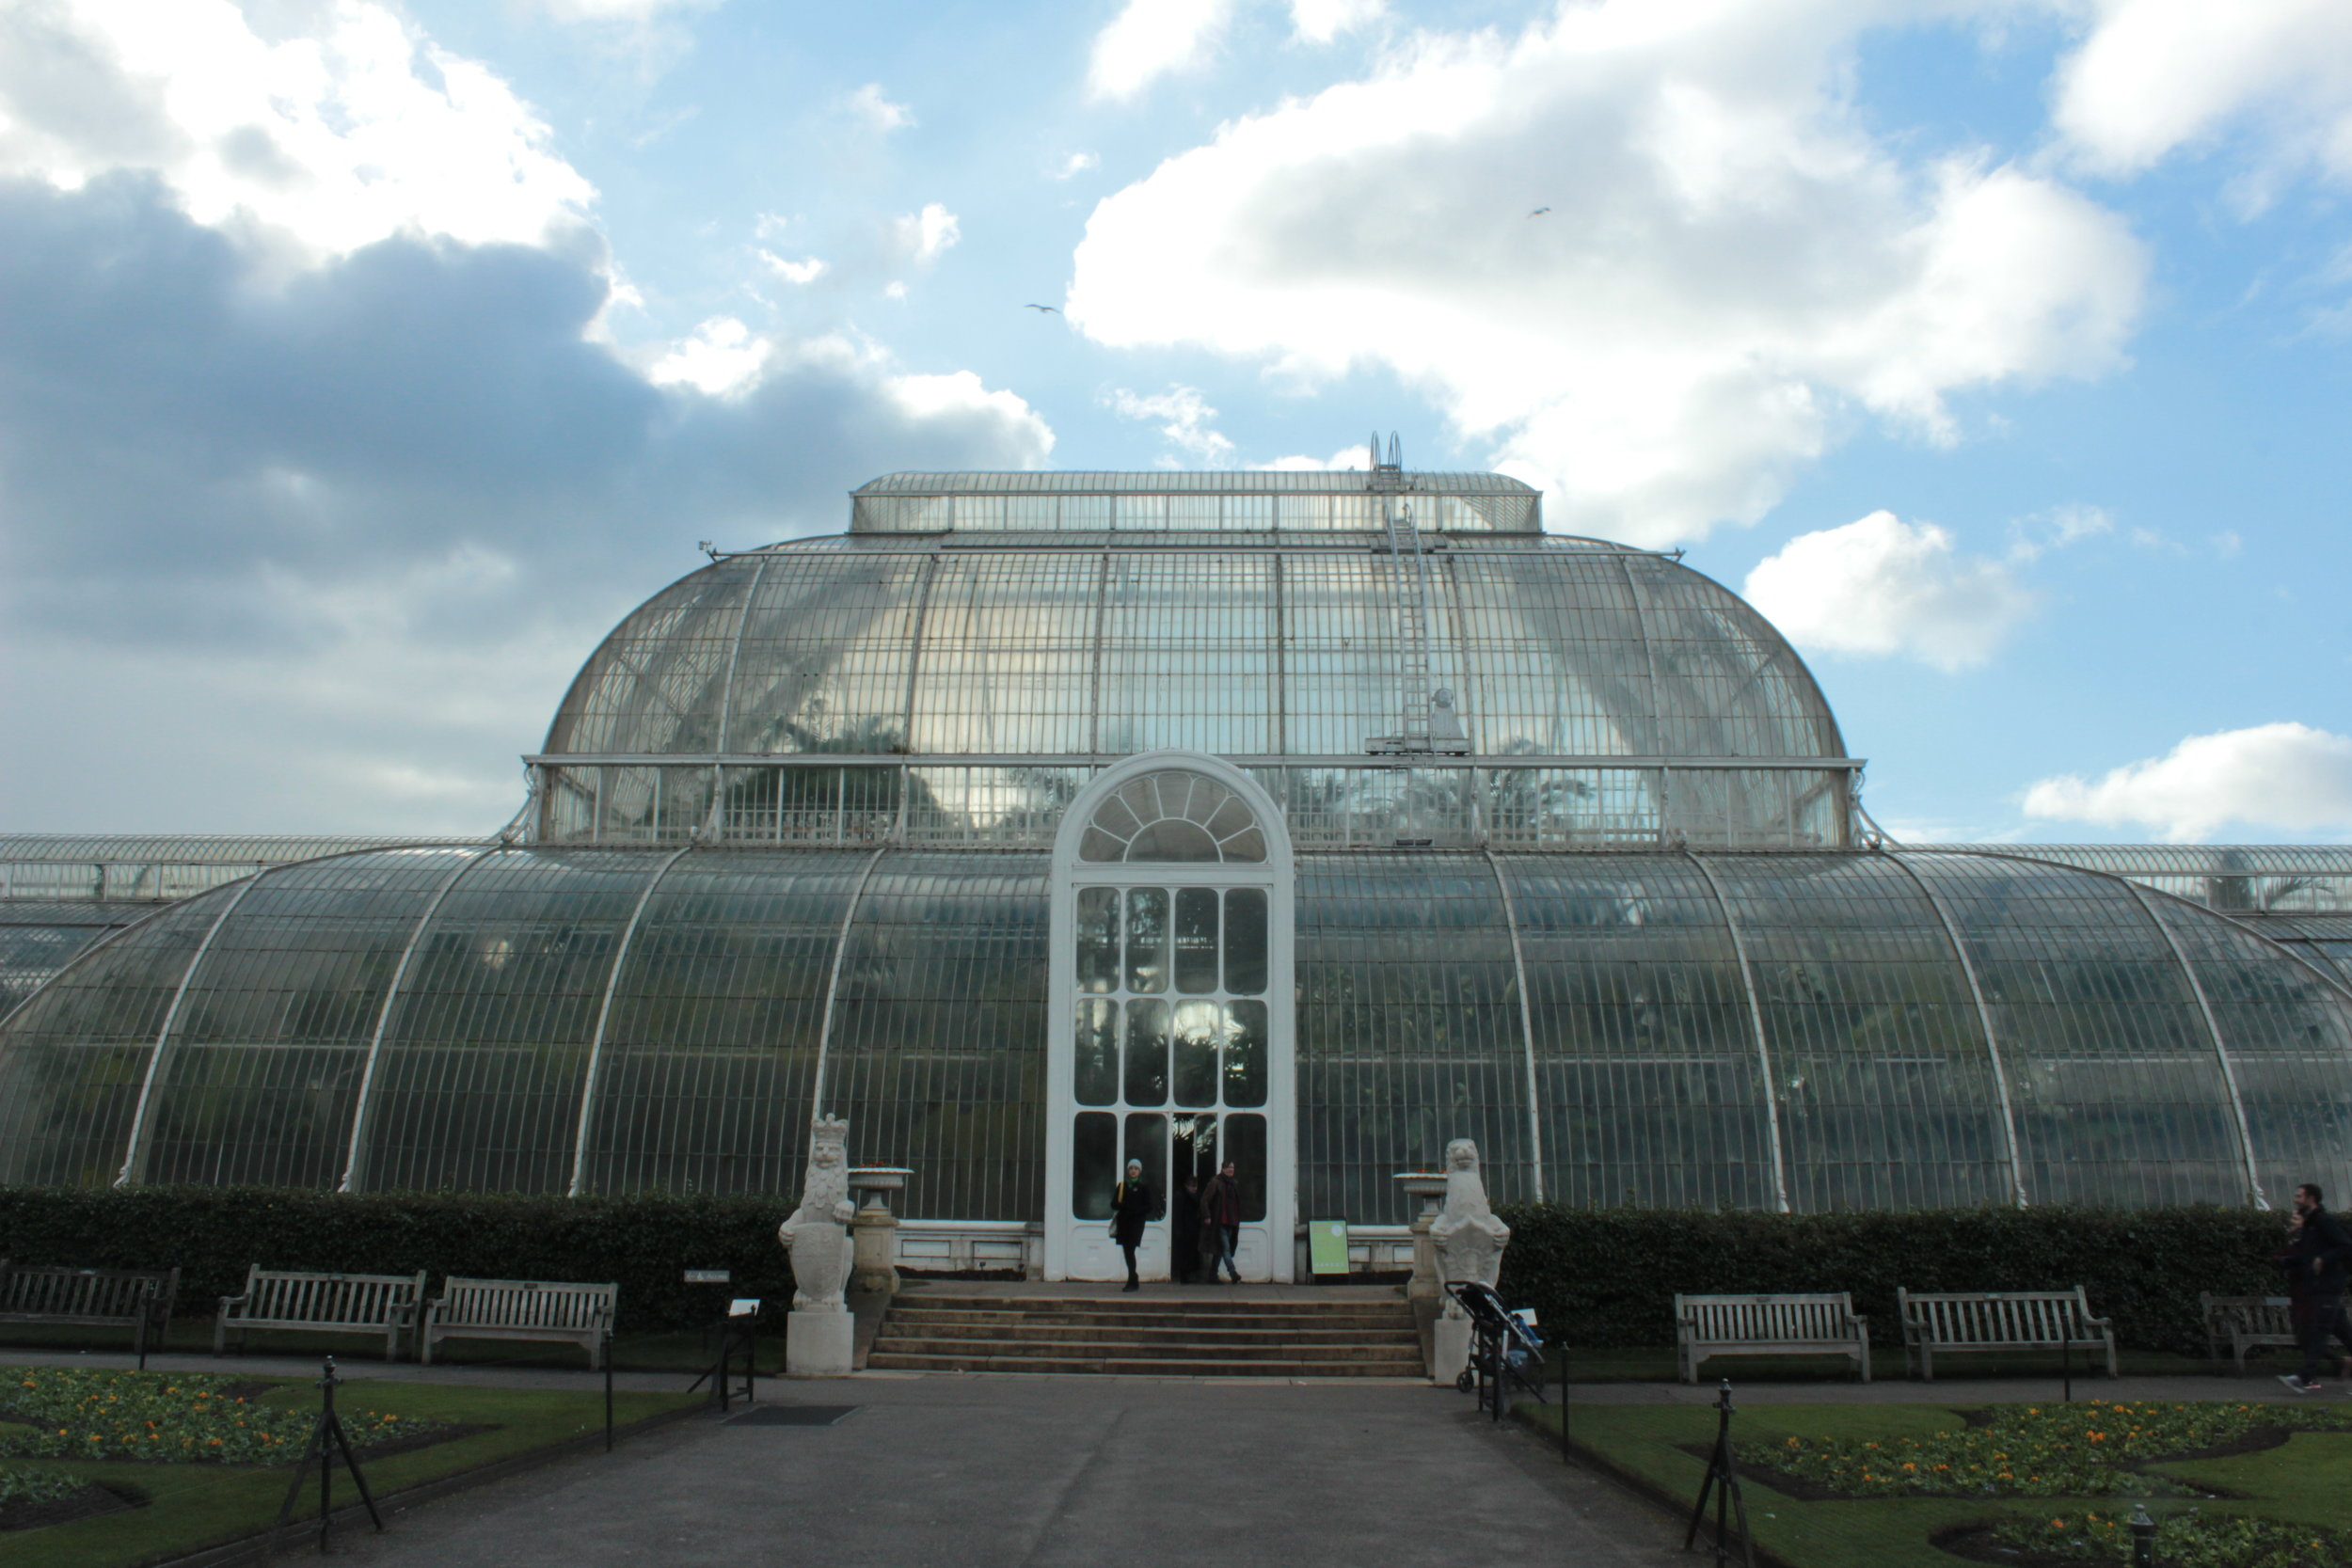 Adventures at Kew - March 8th, 2018